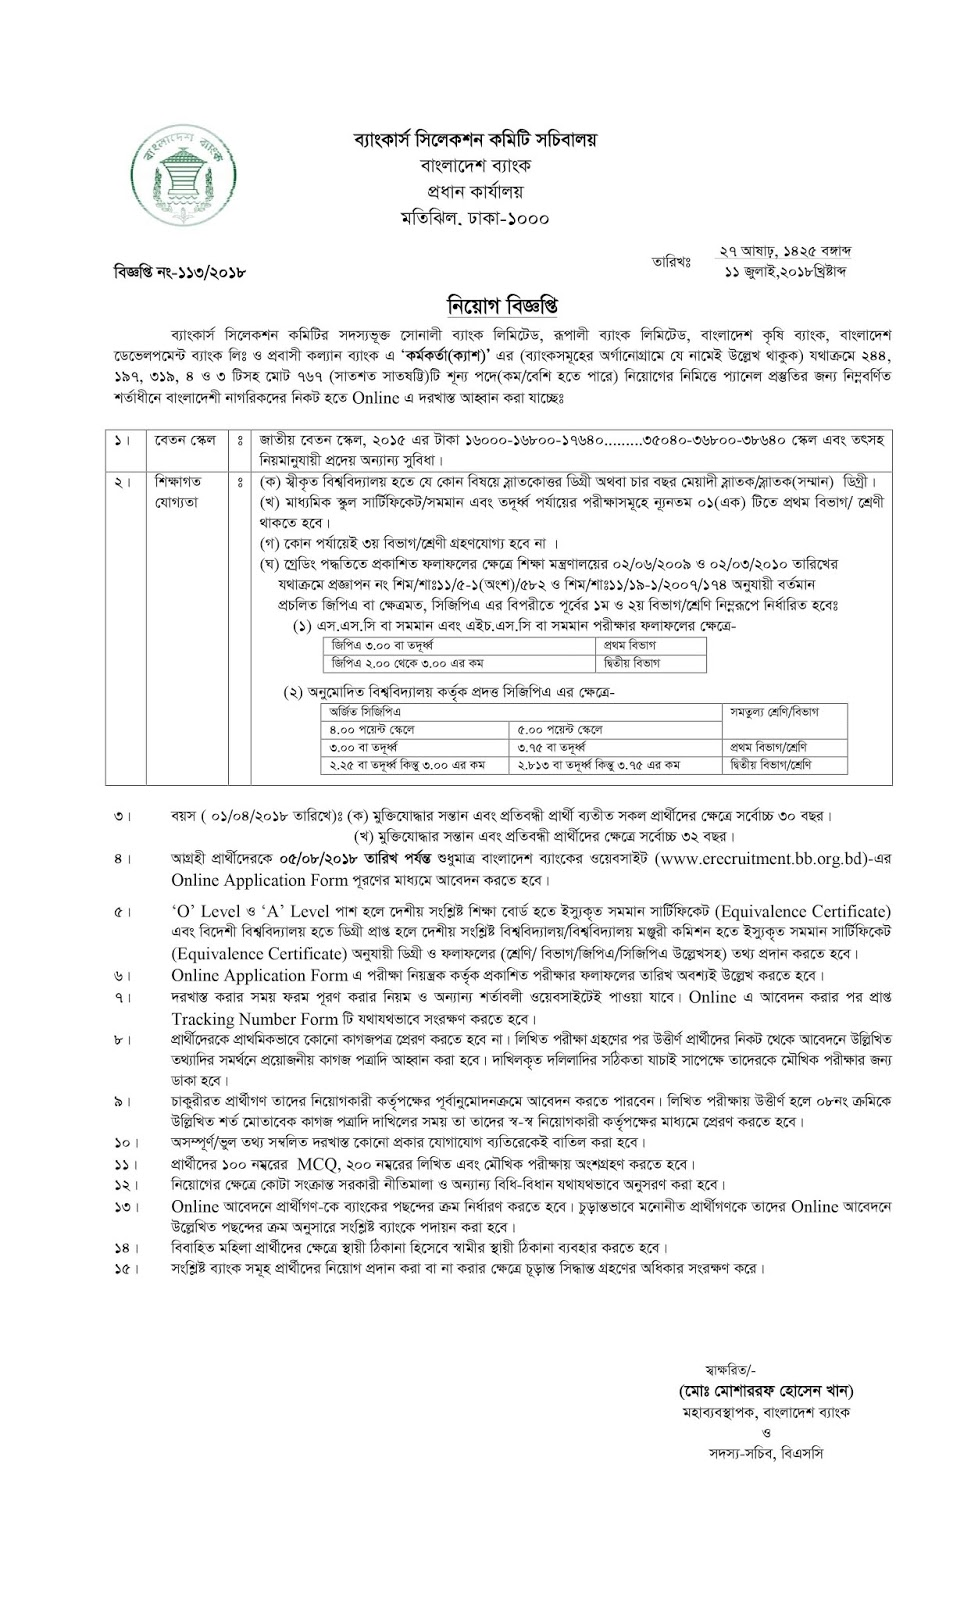 Rupali Bank Limited (SBL) Officer (Cash) Job Circular 2018